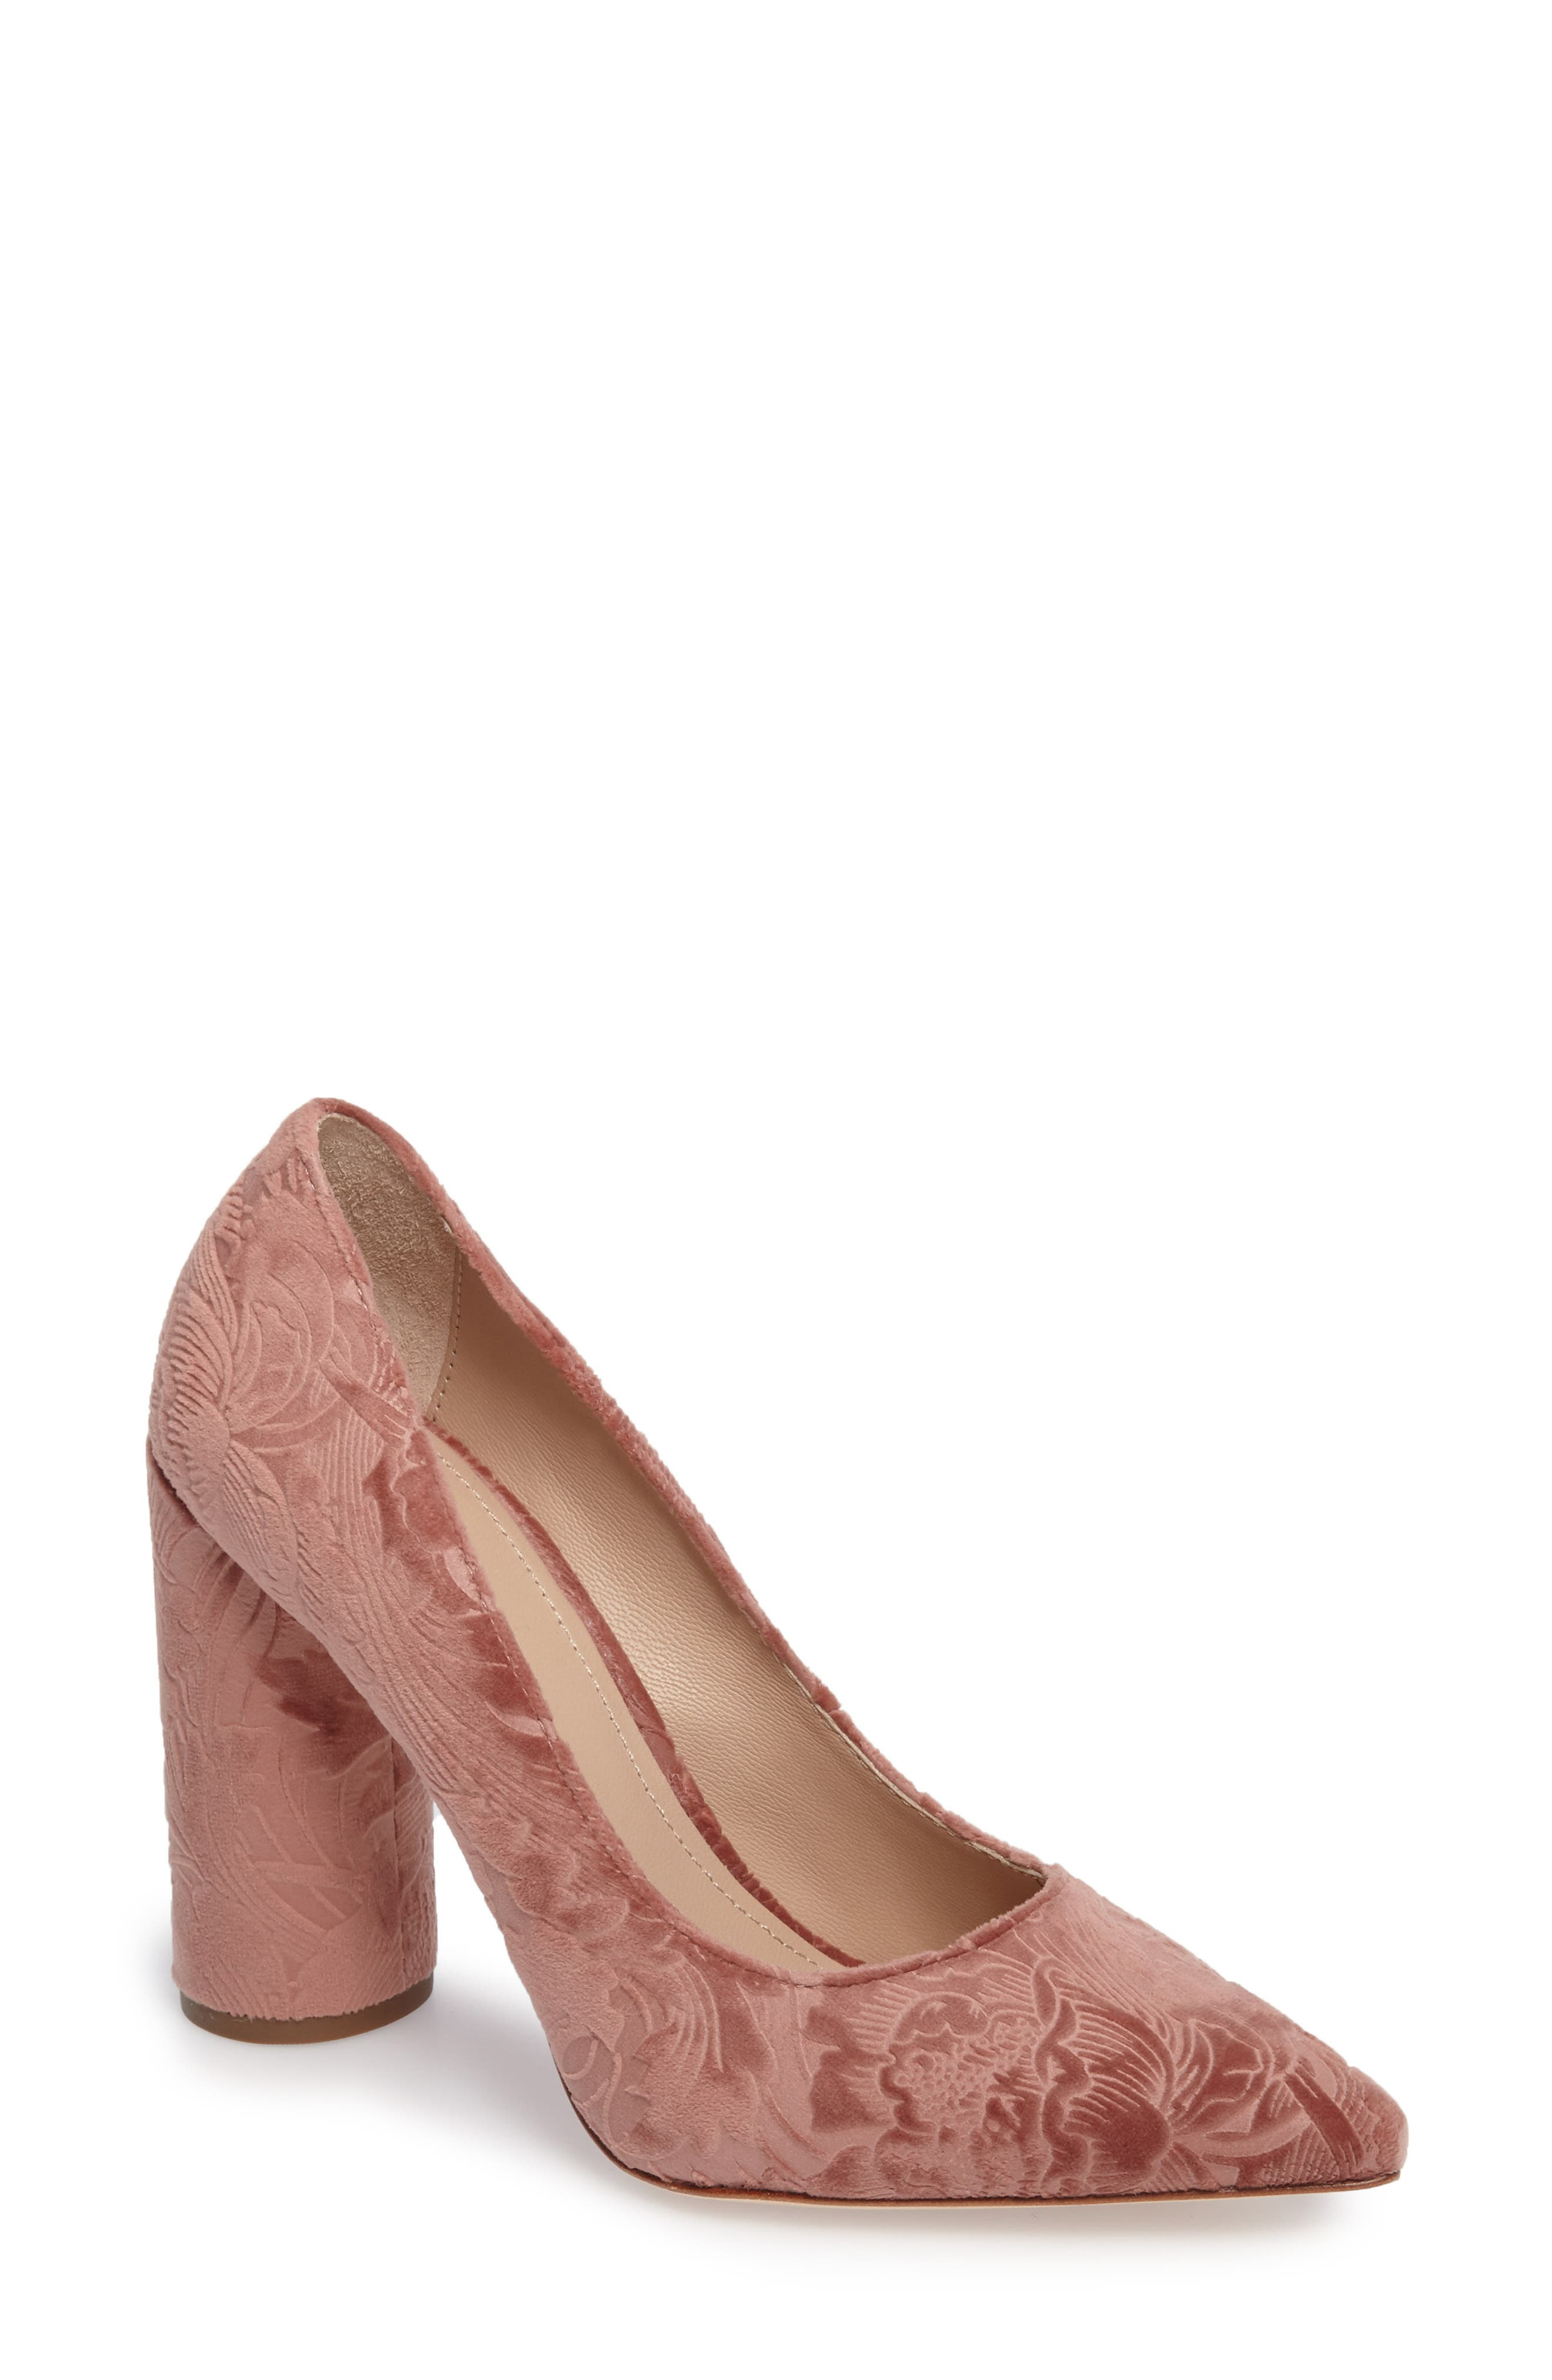 Sale Fake Pour La Victoire Women's Cece Embossed Velvet Pointed Toe Pumps Clearance Looking For Manchester Great Sale Amazon Footaction Sale Best Seller 4OZbxw